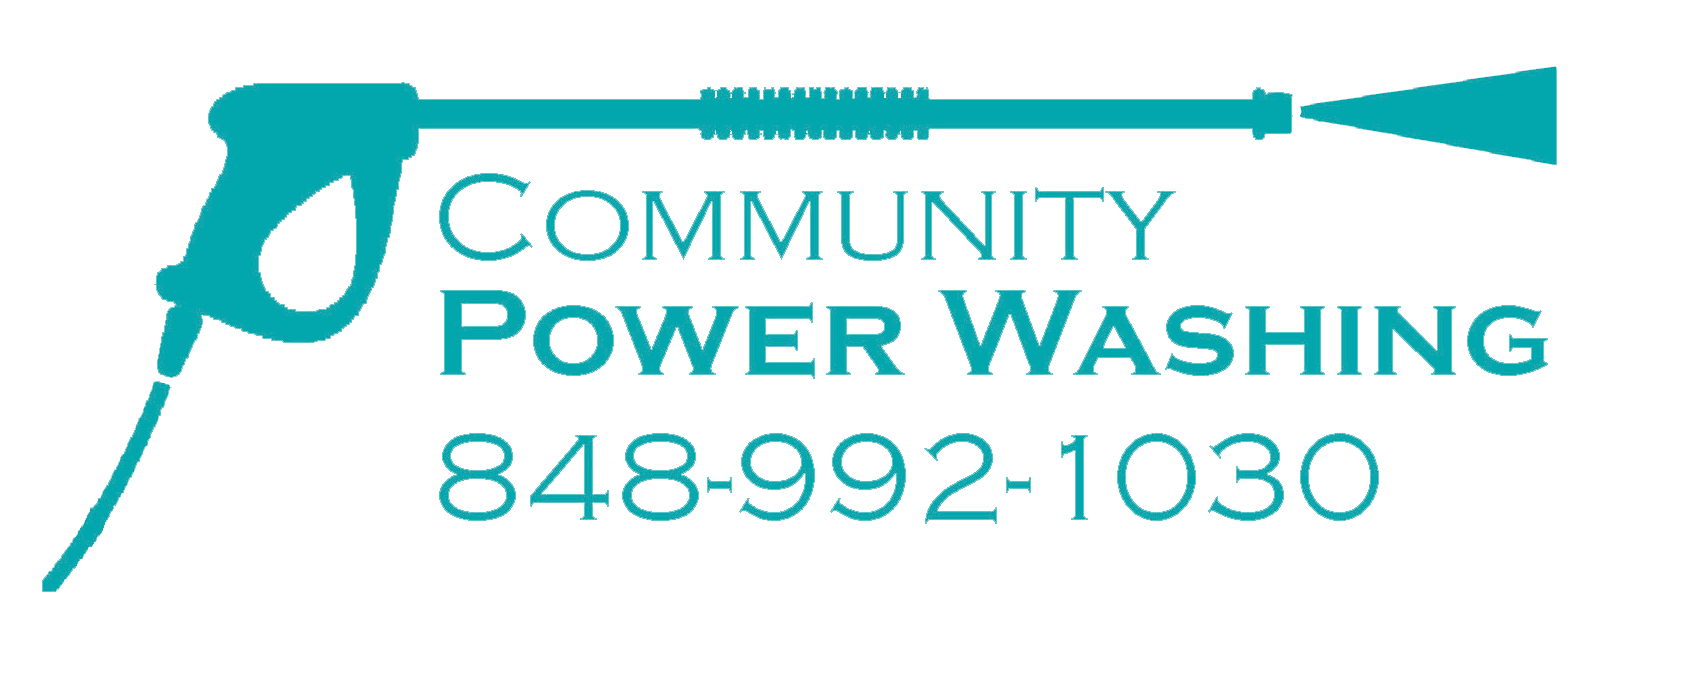 Sponsor Community Power Washing